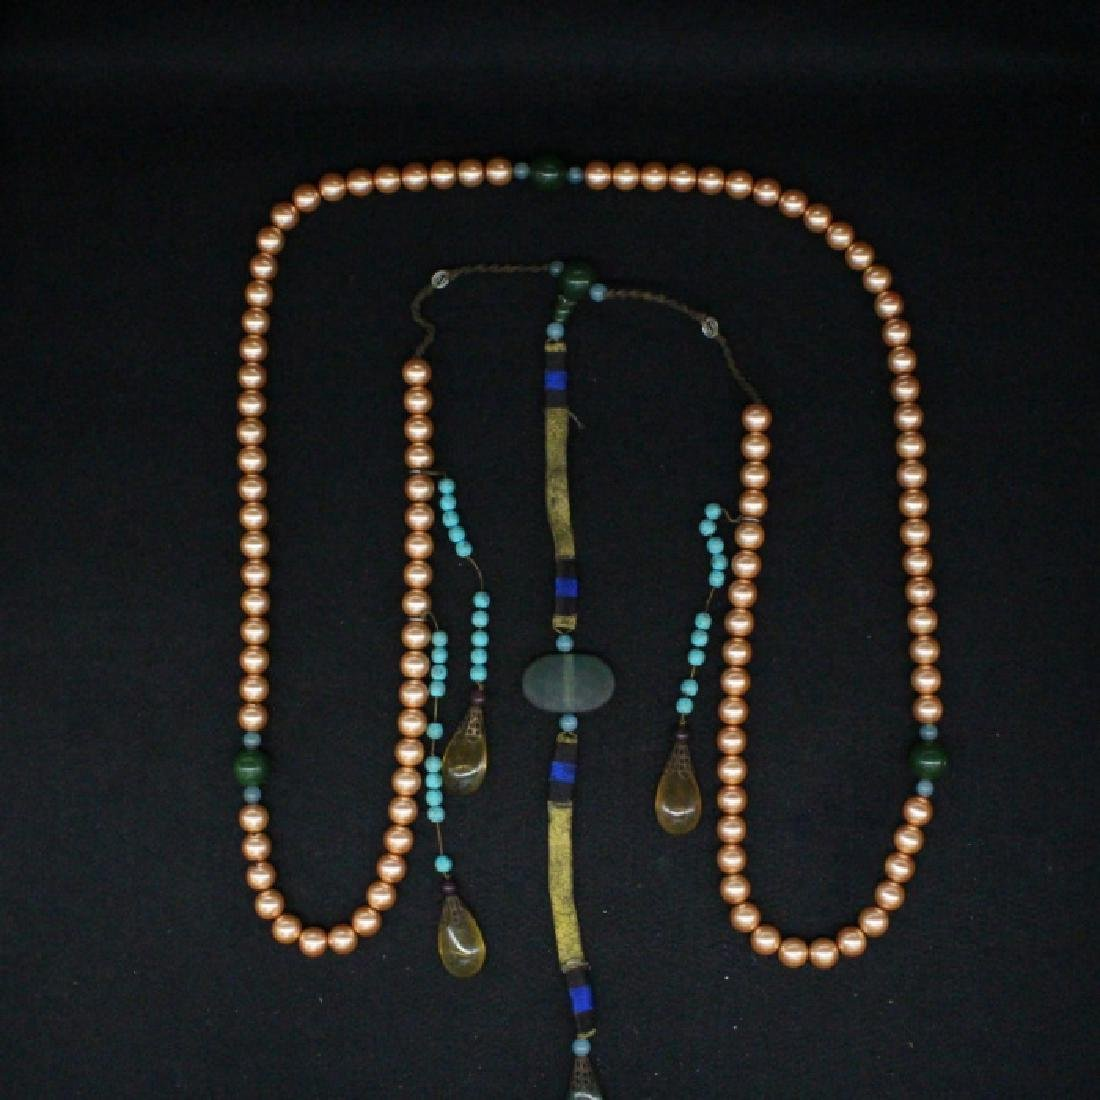 CHINESE PEARL BEADS CHAOZHU COURT NECKLACE